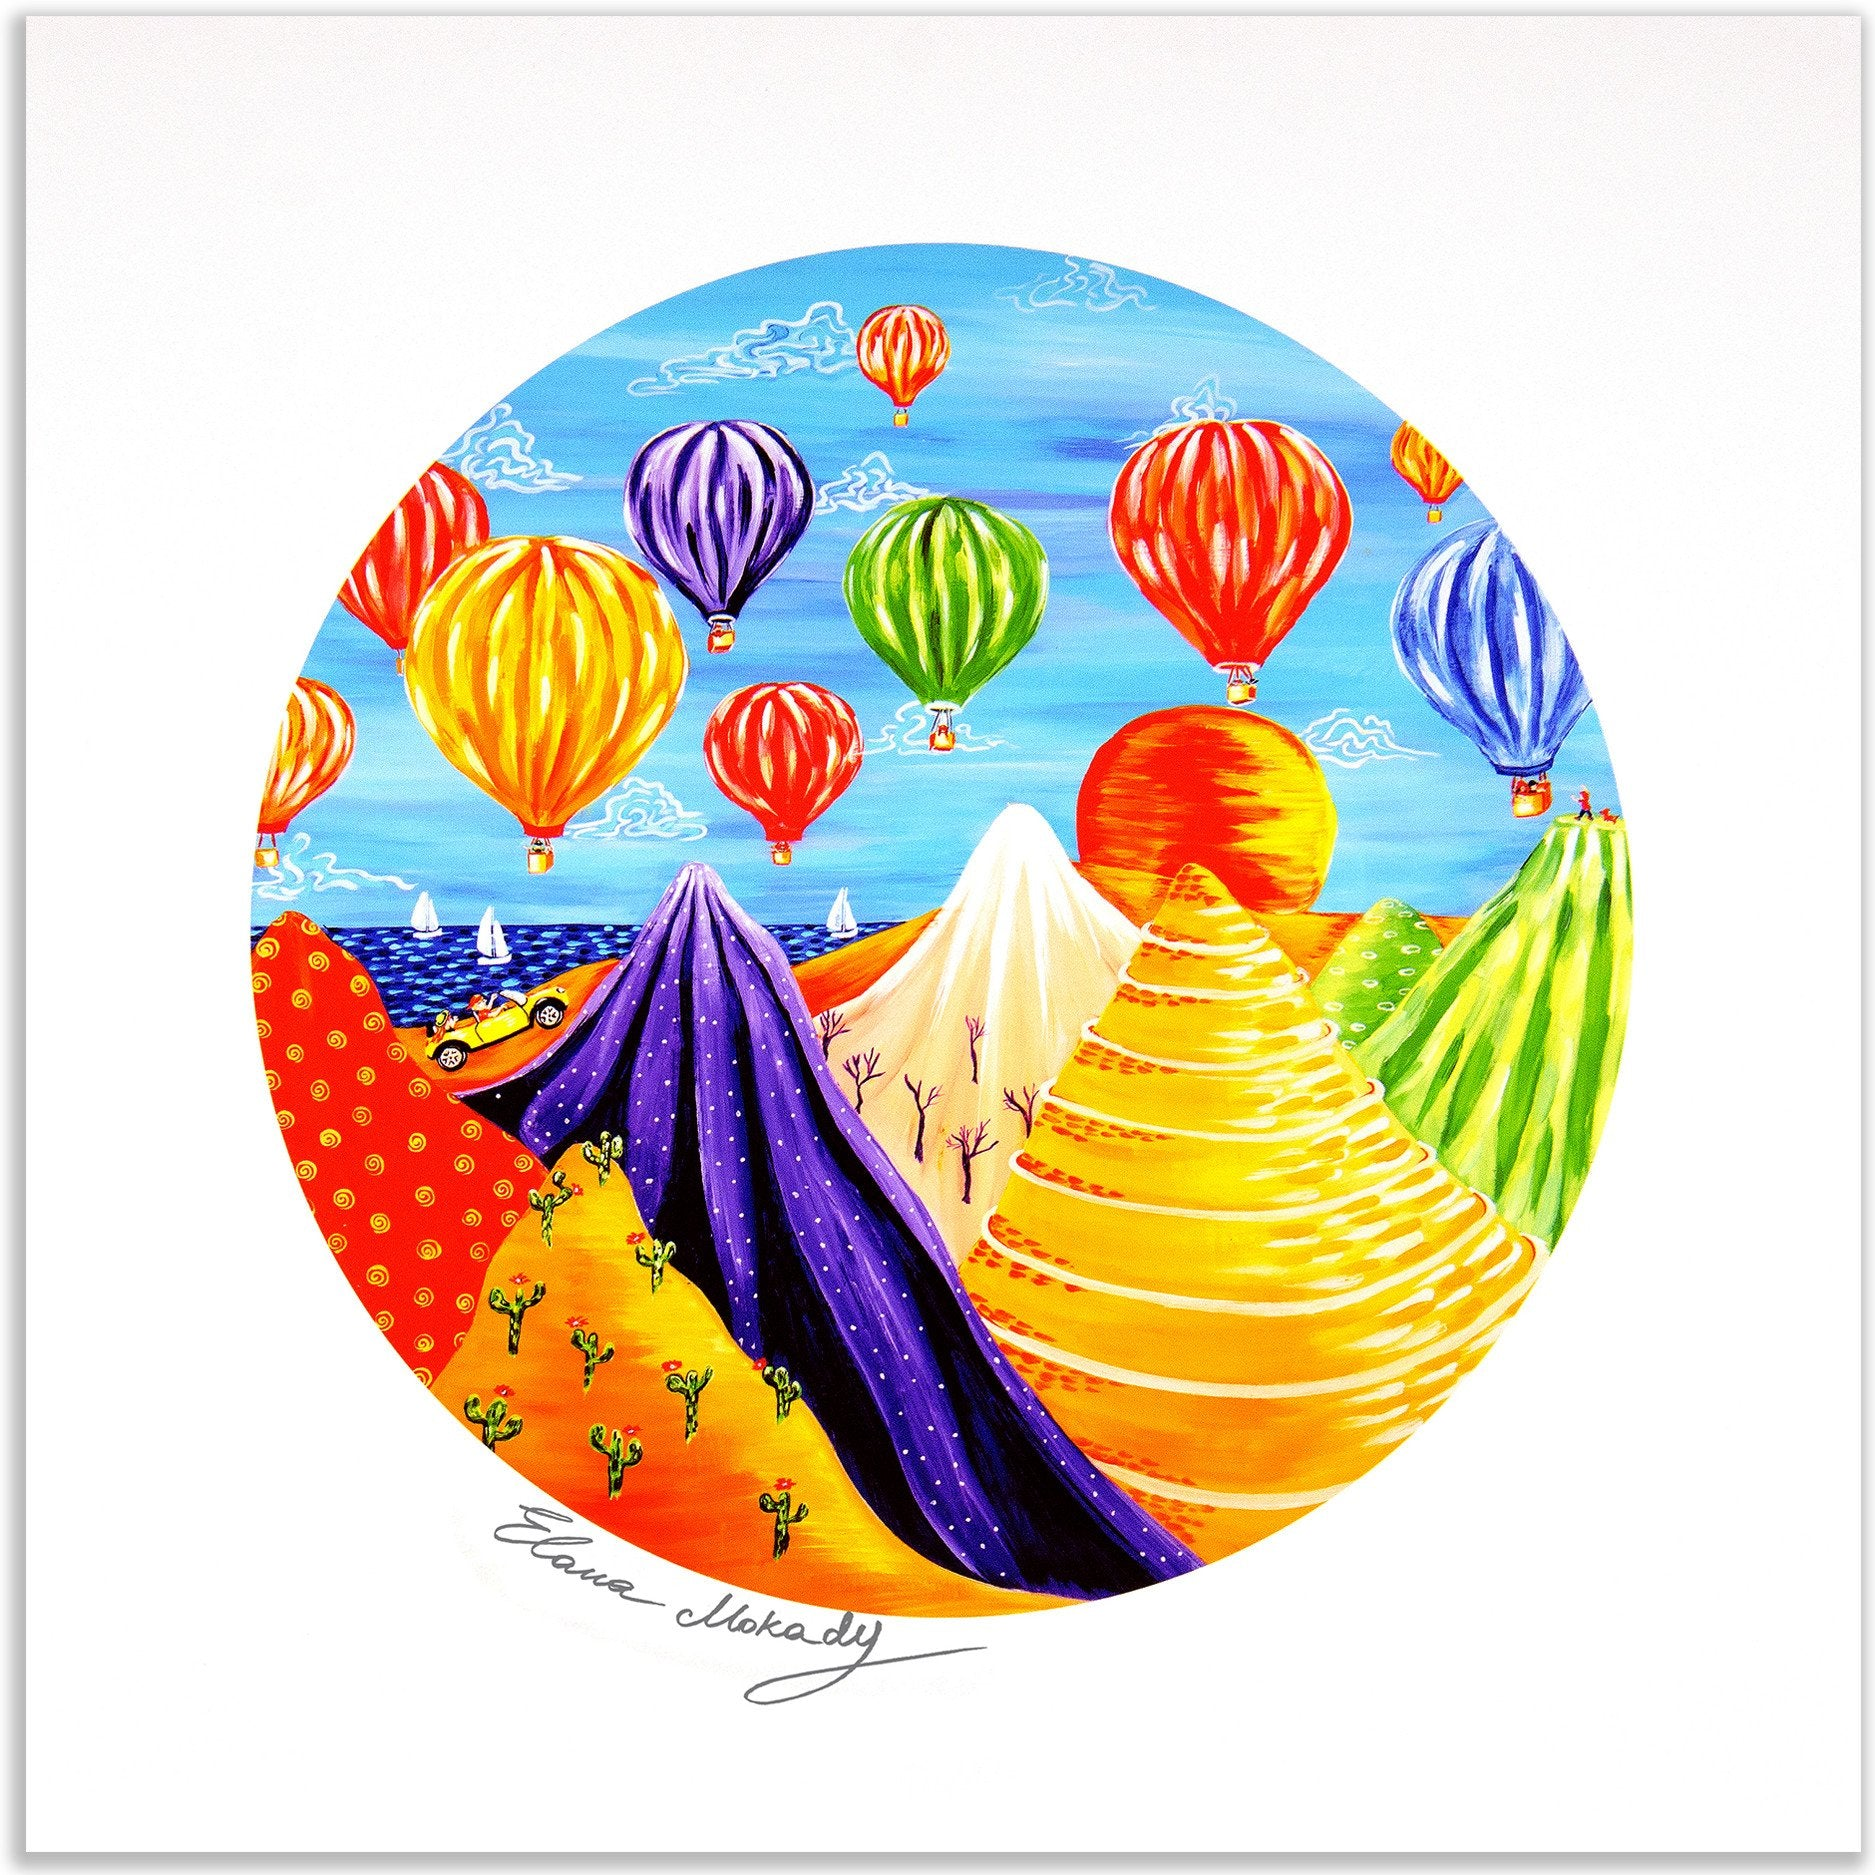 Hot Air Balloon Festival, Paper Wall Art Print